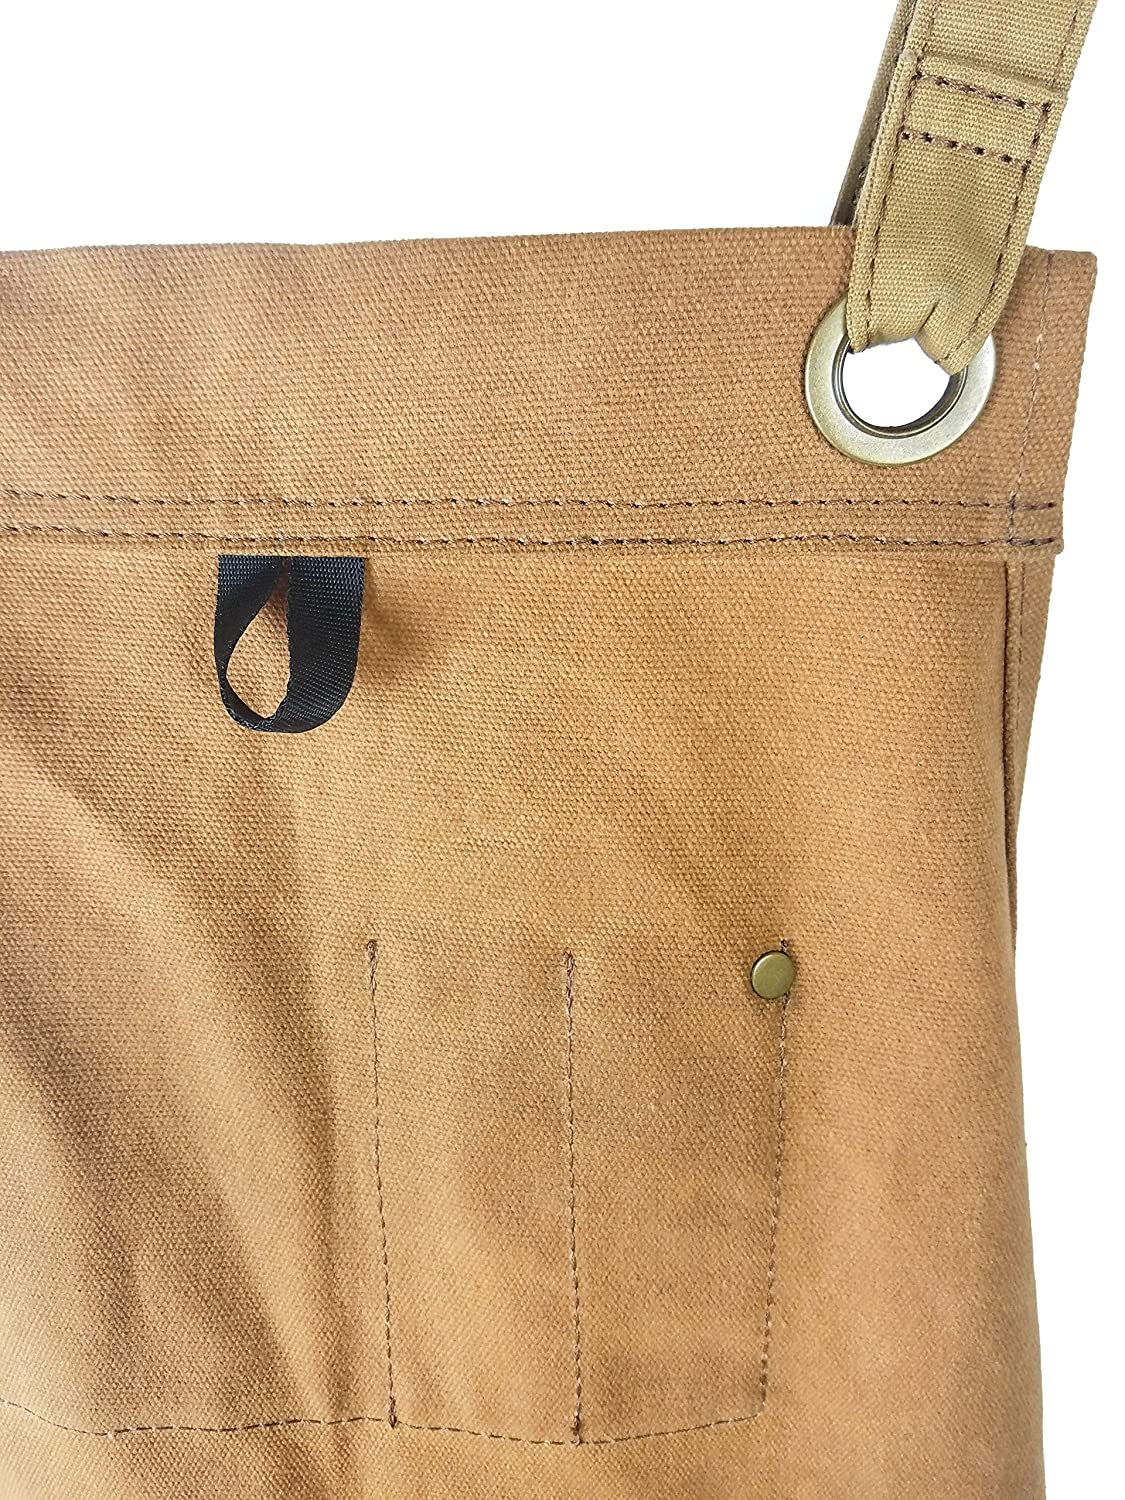 Woodworking Edition Adjusts M to XXL Hudson Durable Goods Heavy Duty Waxed Canvas Apron Brown